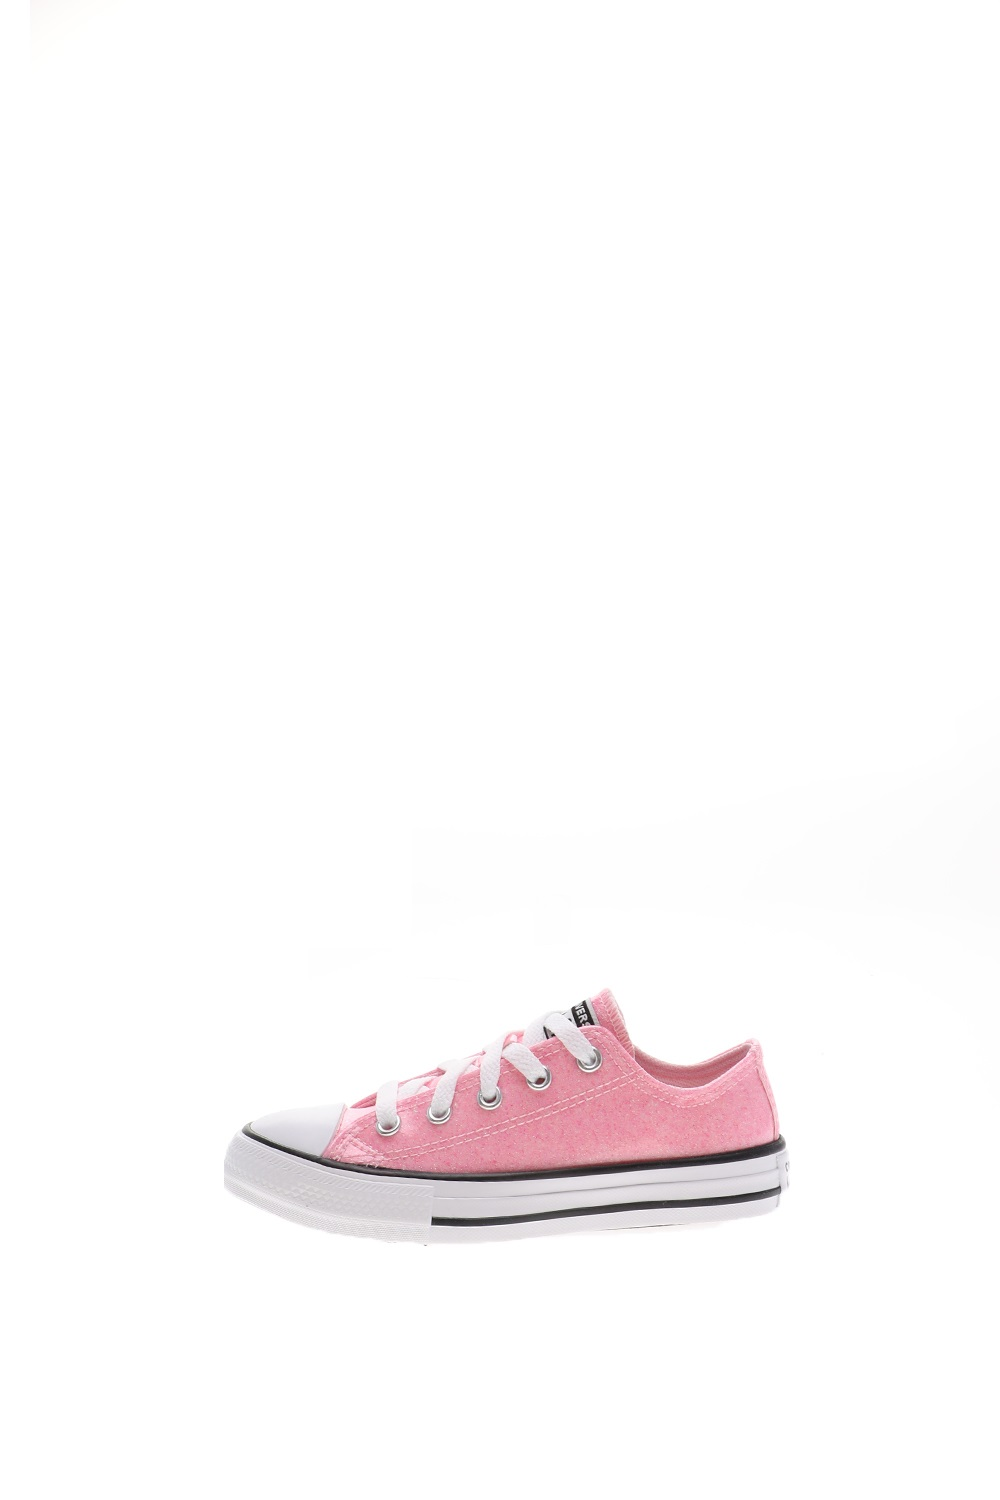 CONVERSE – Παιδικά sneakers CONVERSE CHUCK TAYLOR ALL STAR COATED G ροζ